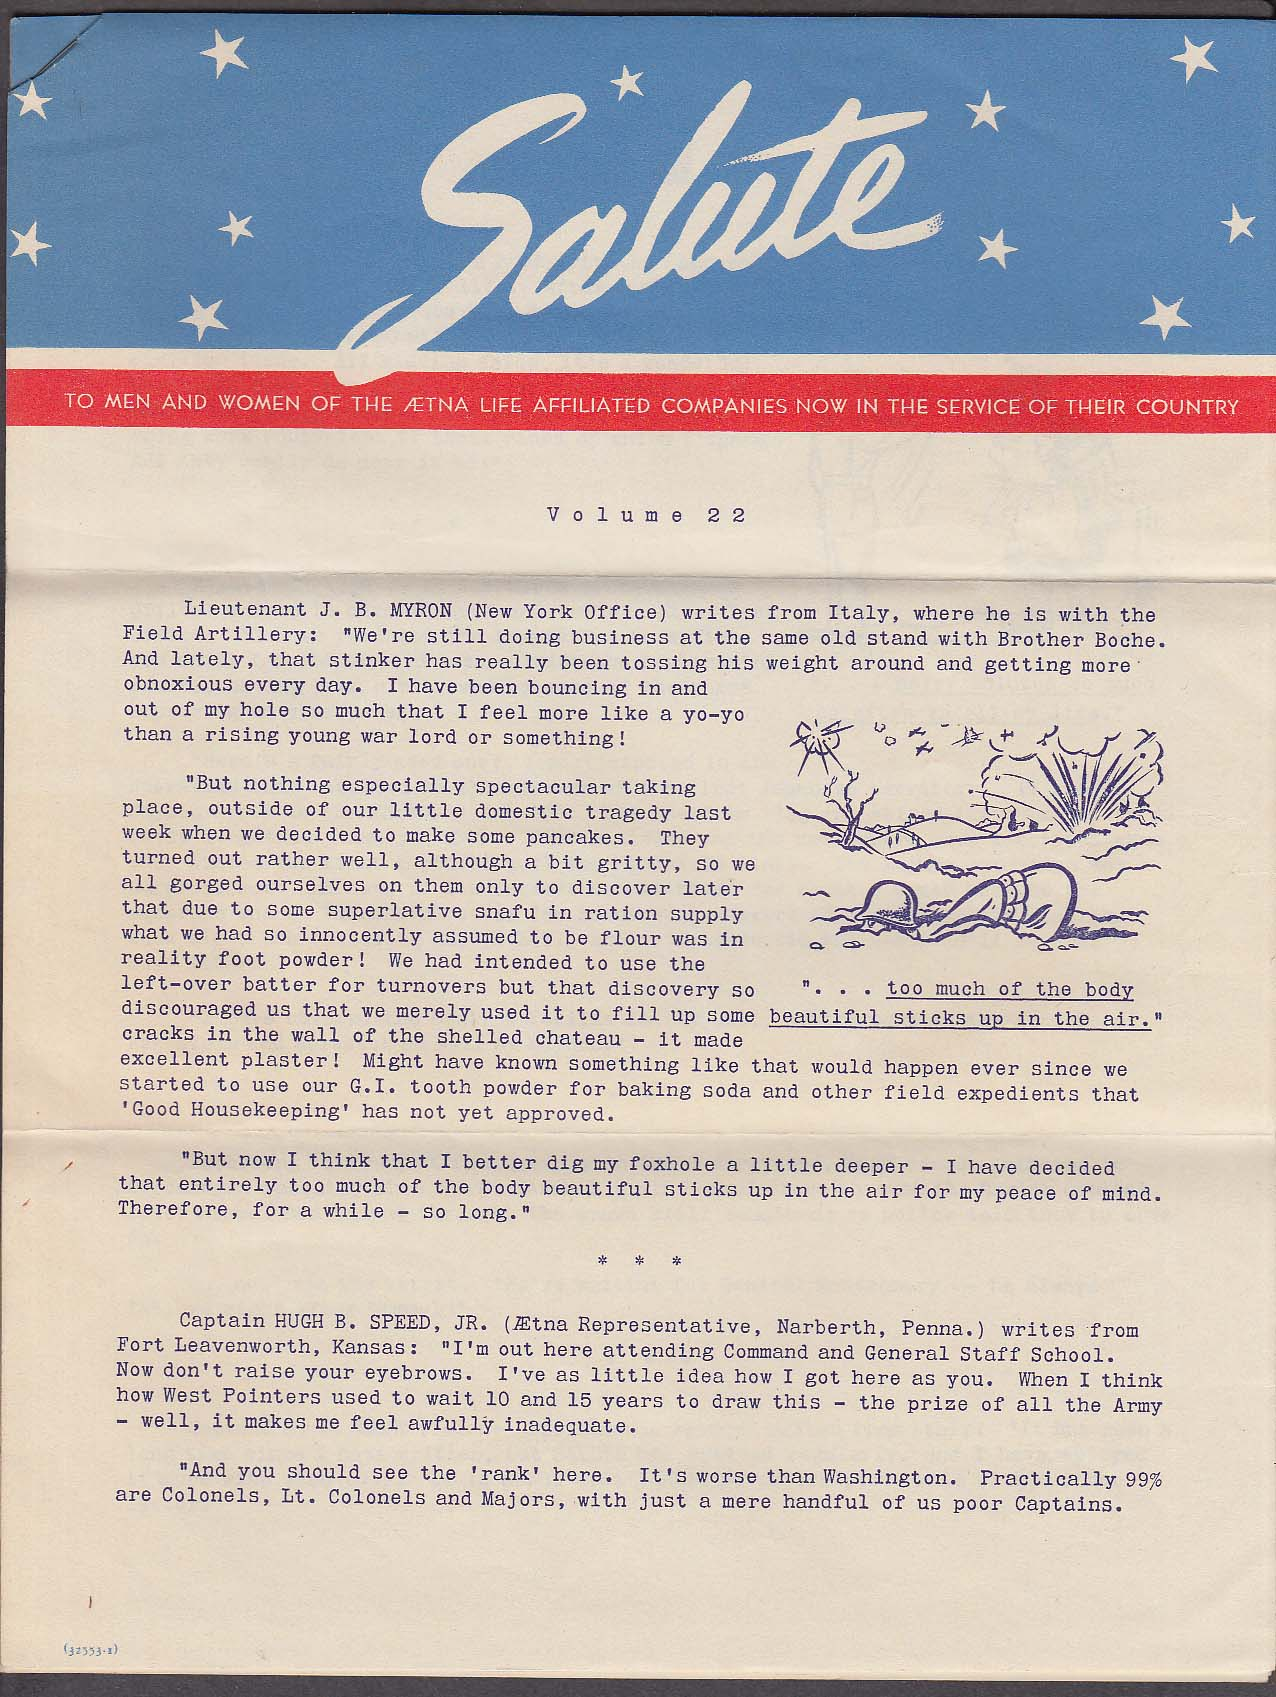 Aetna Life SALUTE V22 Men & Women in Service newsletter 1940s